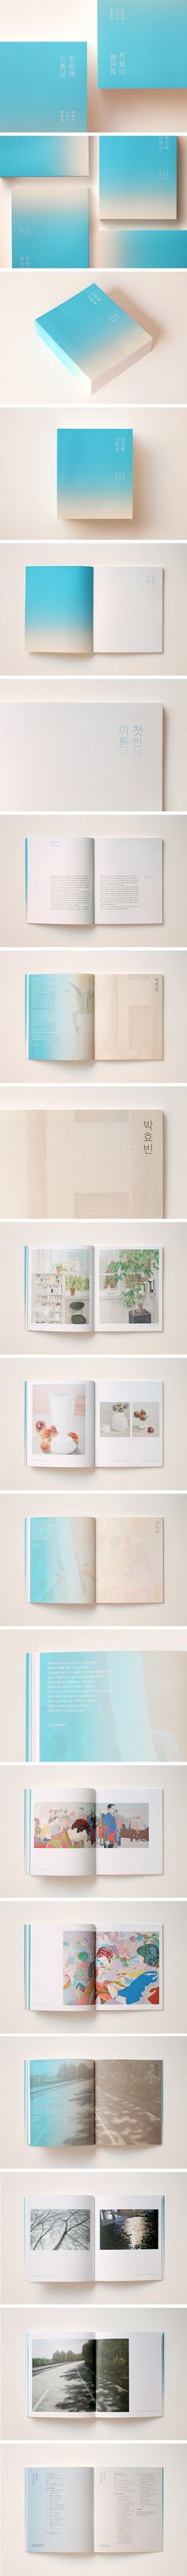 catalog for exhibition - The Next Day The First Time Next Day, The Next, Editorial Design, First Time, Catalog, Brochures, Editorial Layout